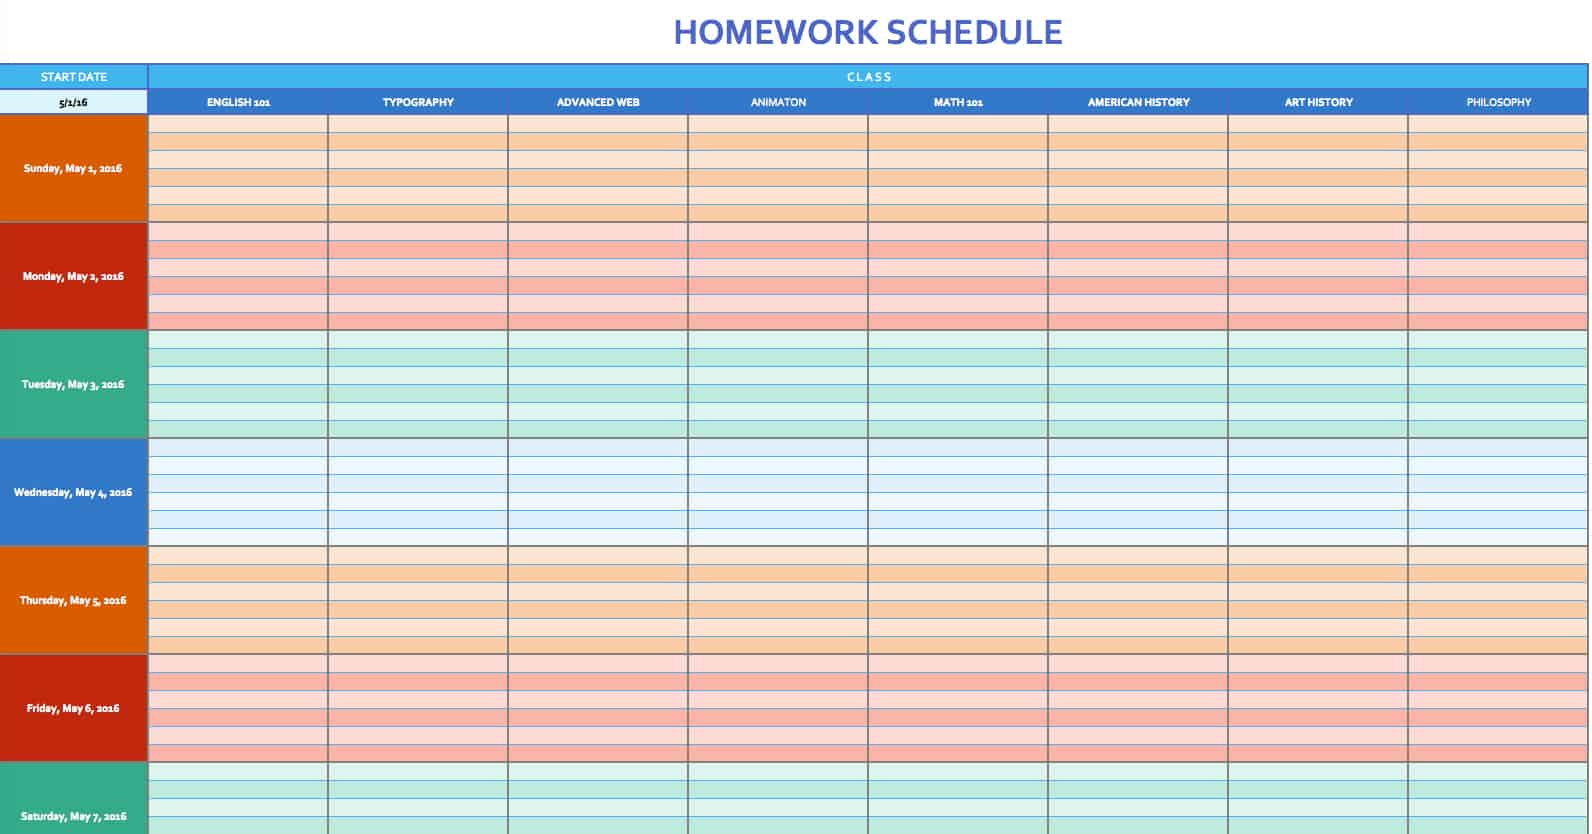 Free weekly schedule templates for excel smartsheet homework schedule template alramifo Images